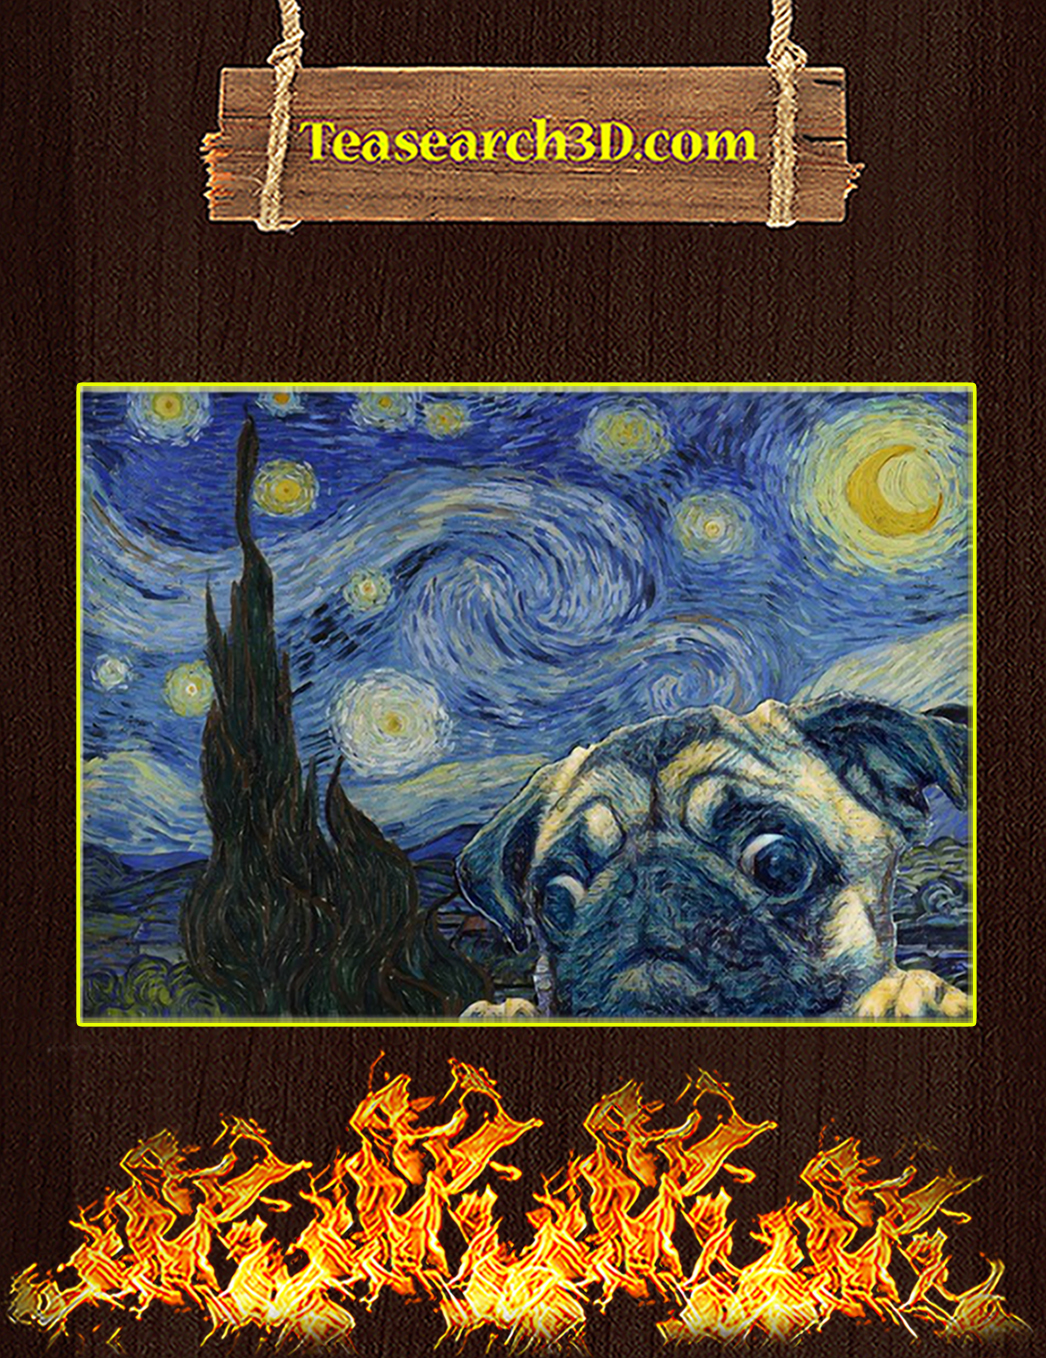 Pug starry night van gogh poster A1